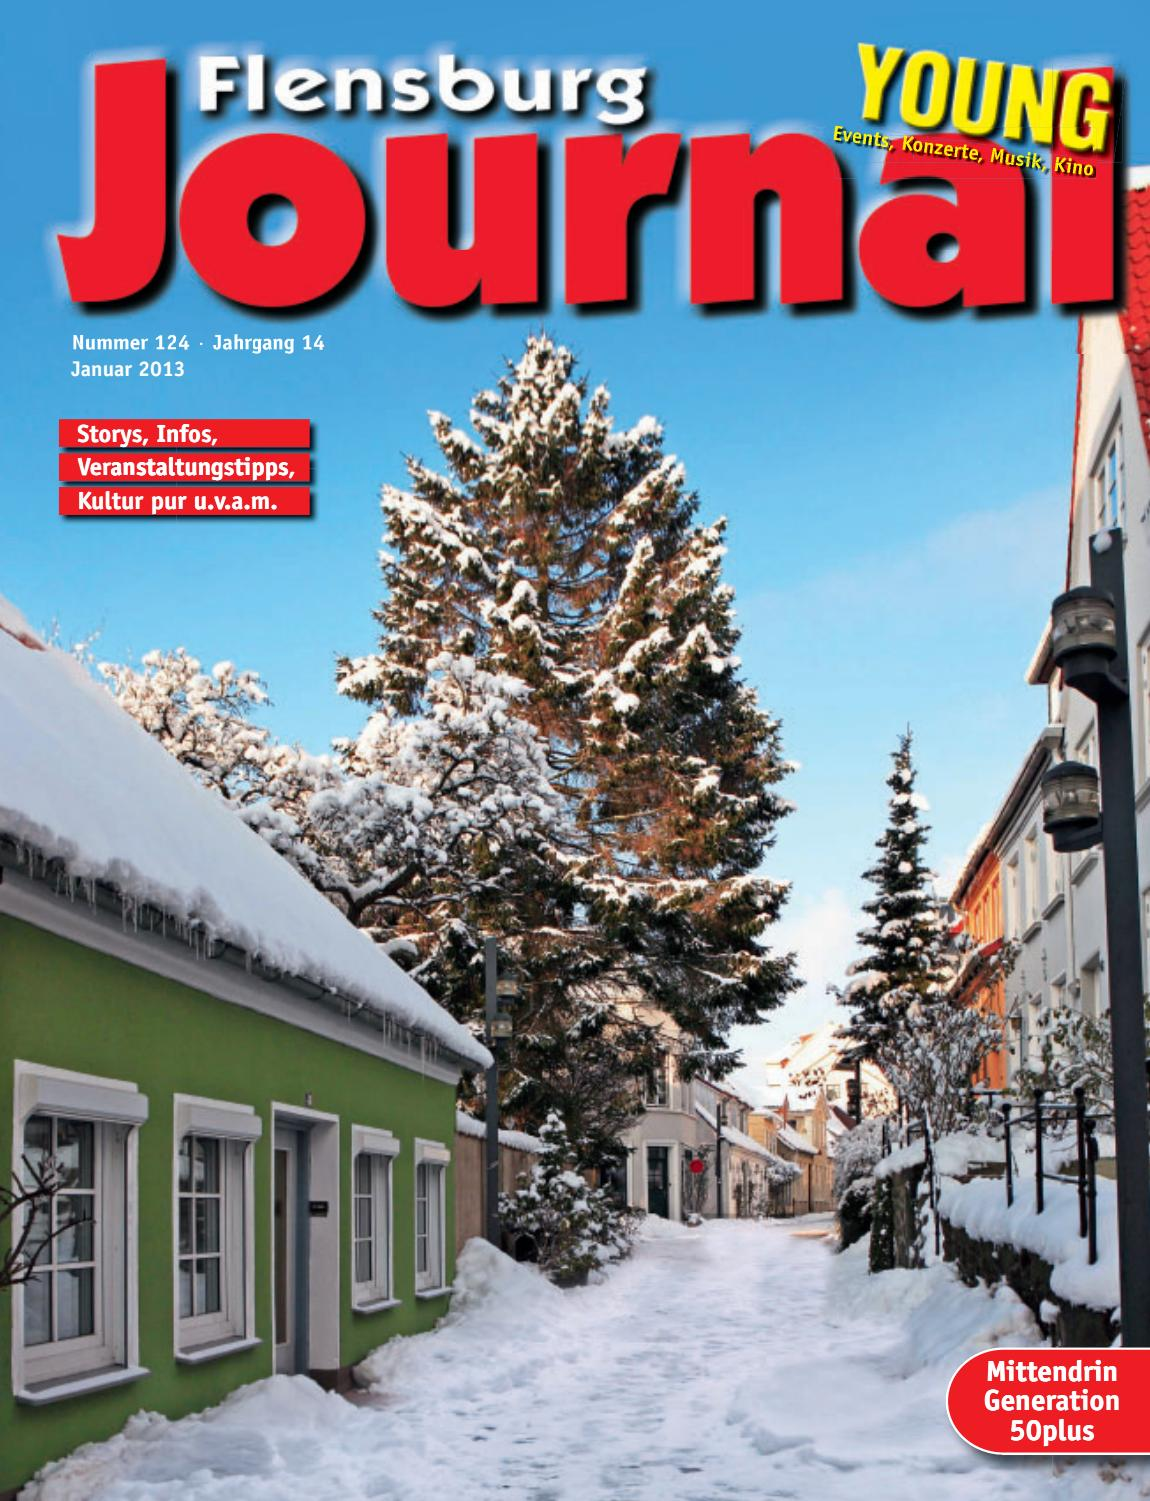 Flensburg Journal Nummer 124 By Flensburg Journal Issuu